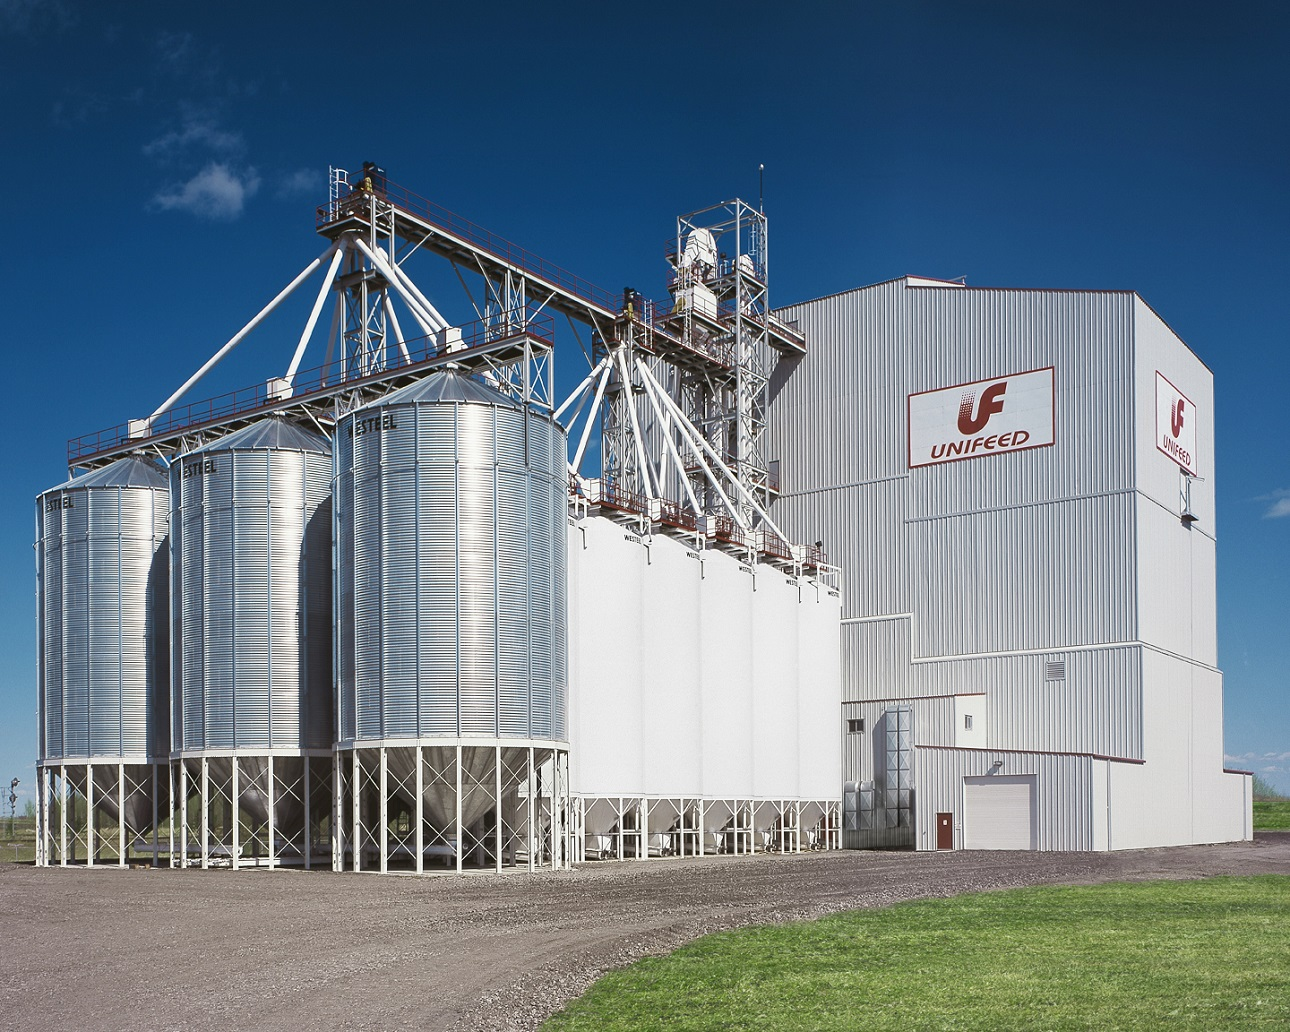 Unifeed bins warehouse feed truck loadout processing Ag-industrial Agribusines Edmonton Bag feeds Bulk Pelleted Mash Process bins HACCP Feed mill Construction management